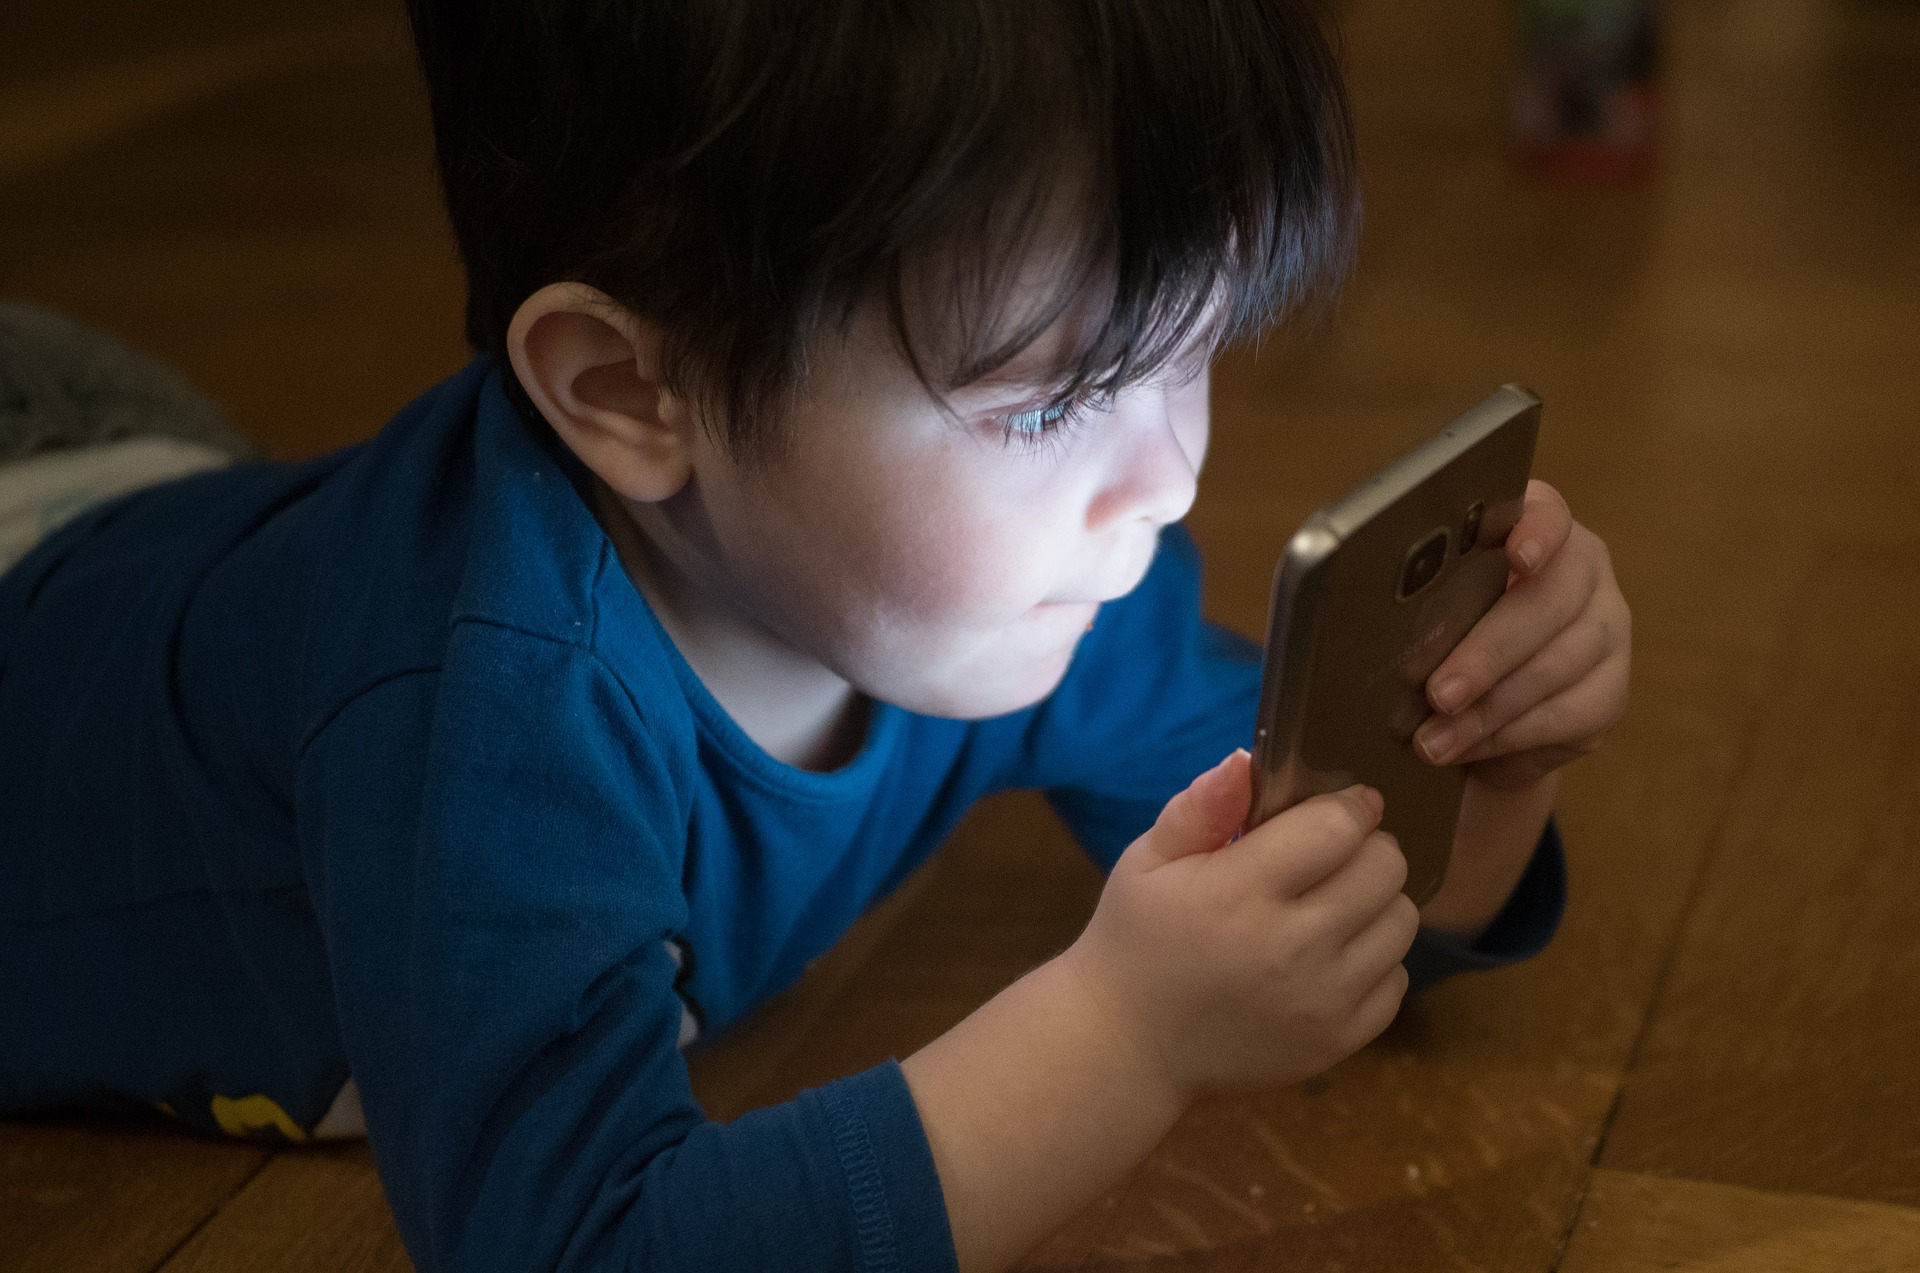 8 Things to Know Before Buying Your Child a Mobile Phone